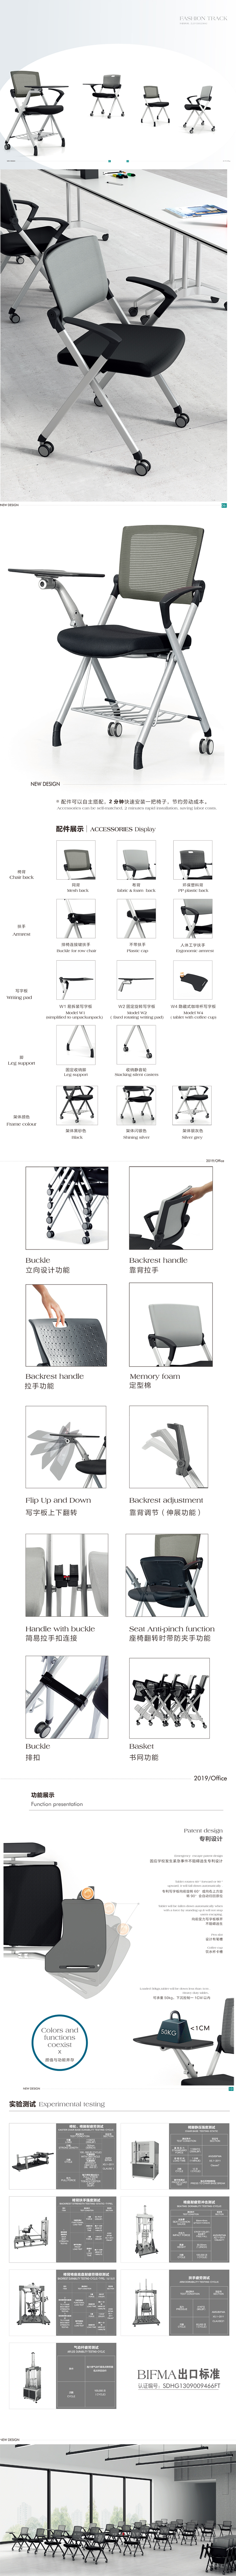 2019 hot selling grey wheeling plastic mesh back folding stackable metting conference room training study chair with writing pad